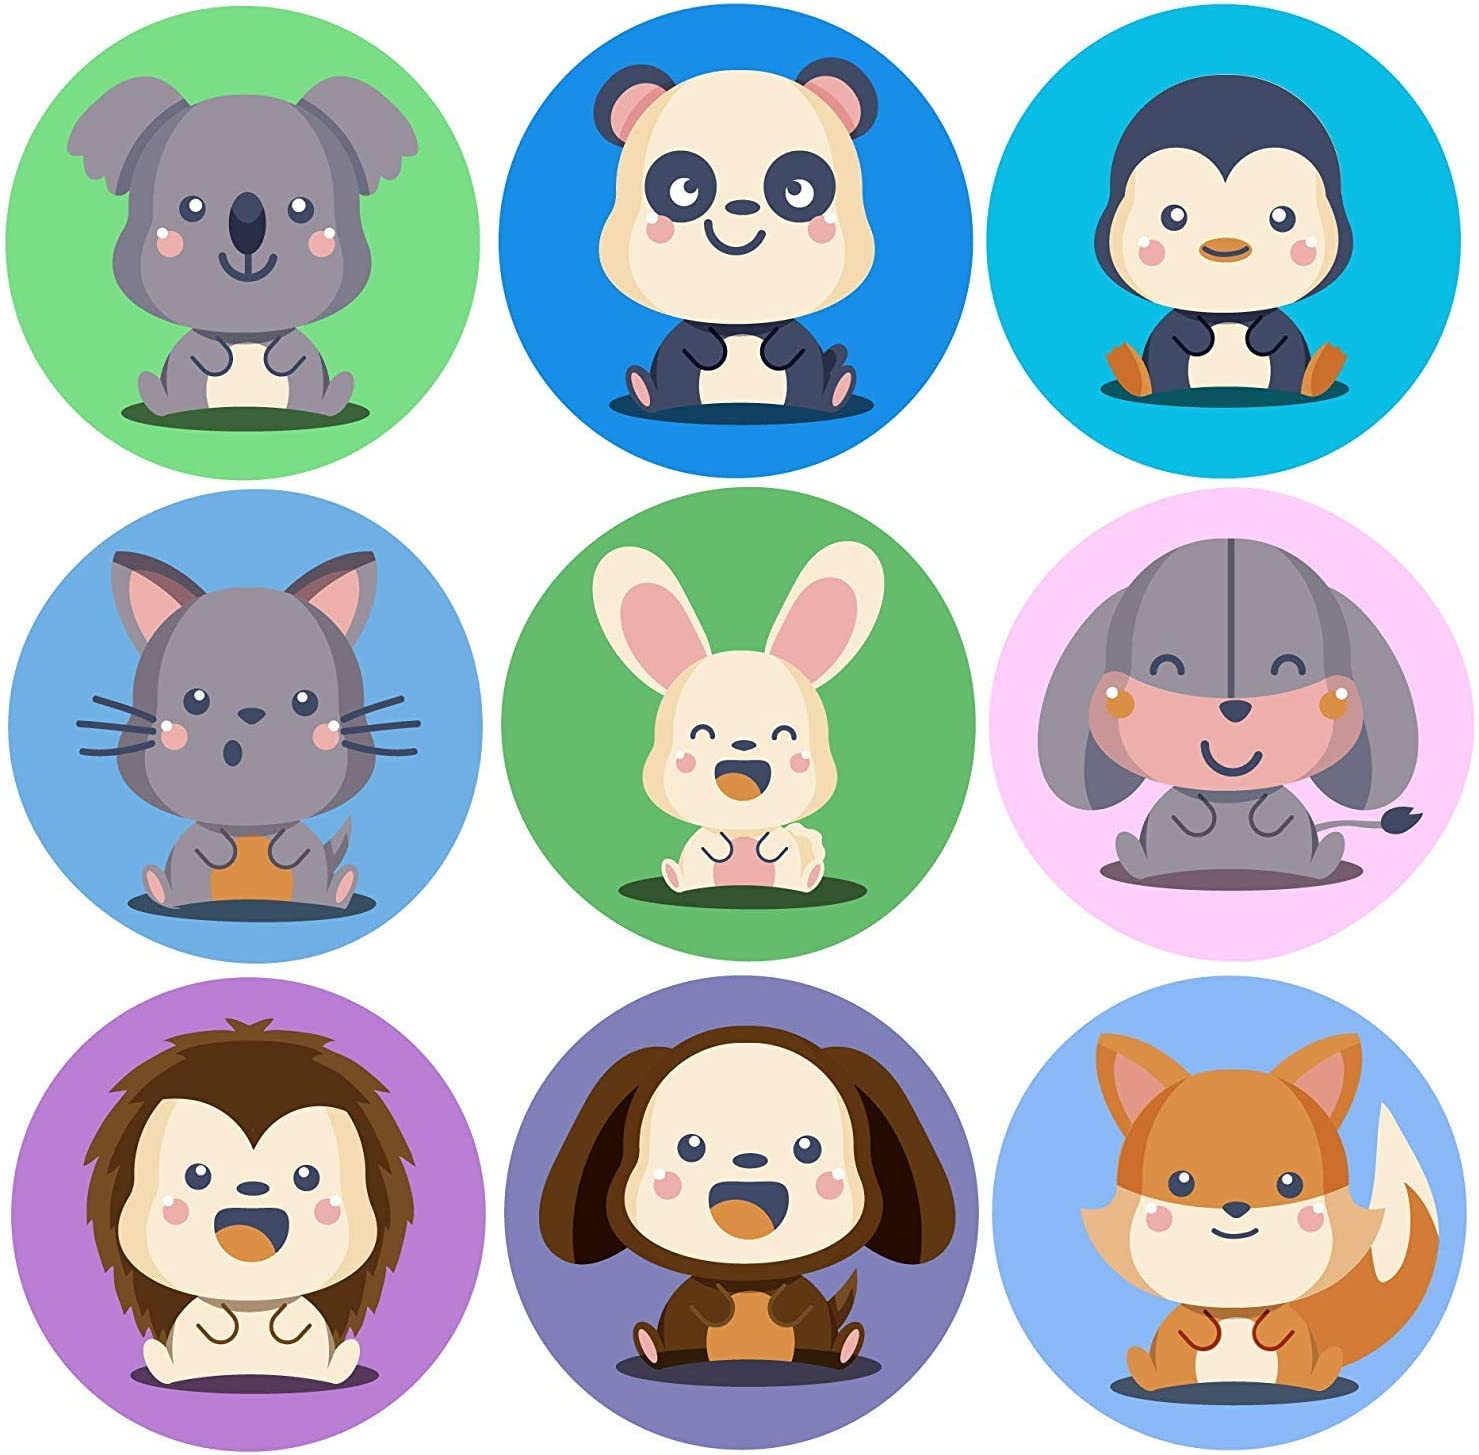 GlossTrick Anime Animal Stickers for Kids and Toddler Reward Sticker for Preschool School Teachers and Doctor Animals Stickers for Celebrate Birthday Pack 200 in Roll Bulk